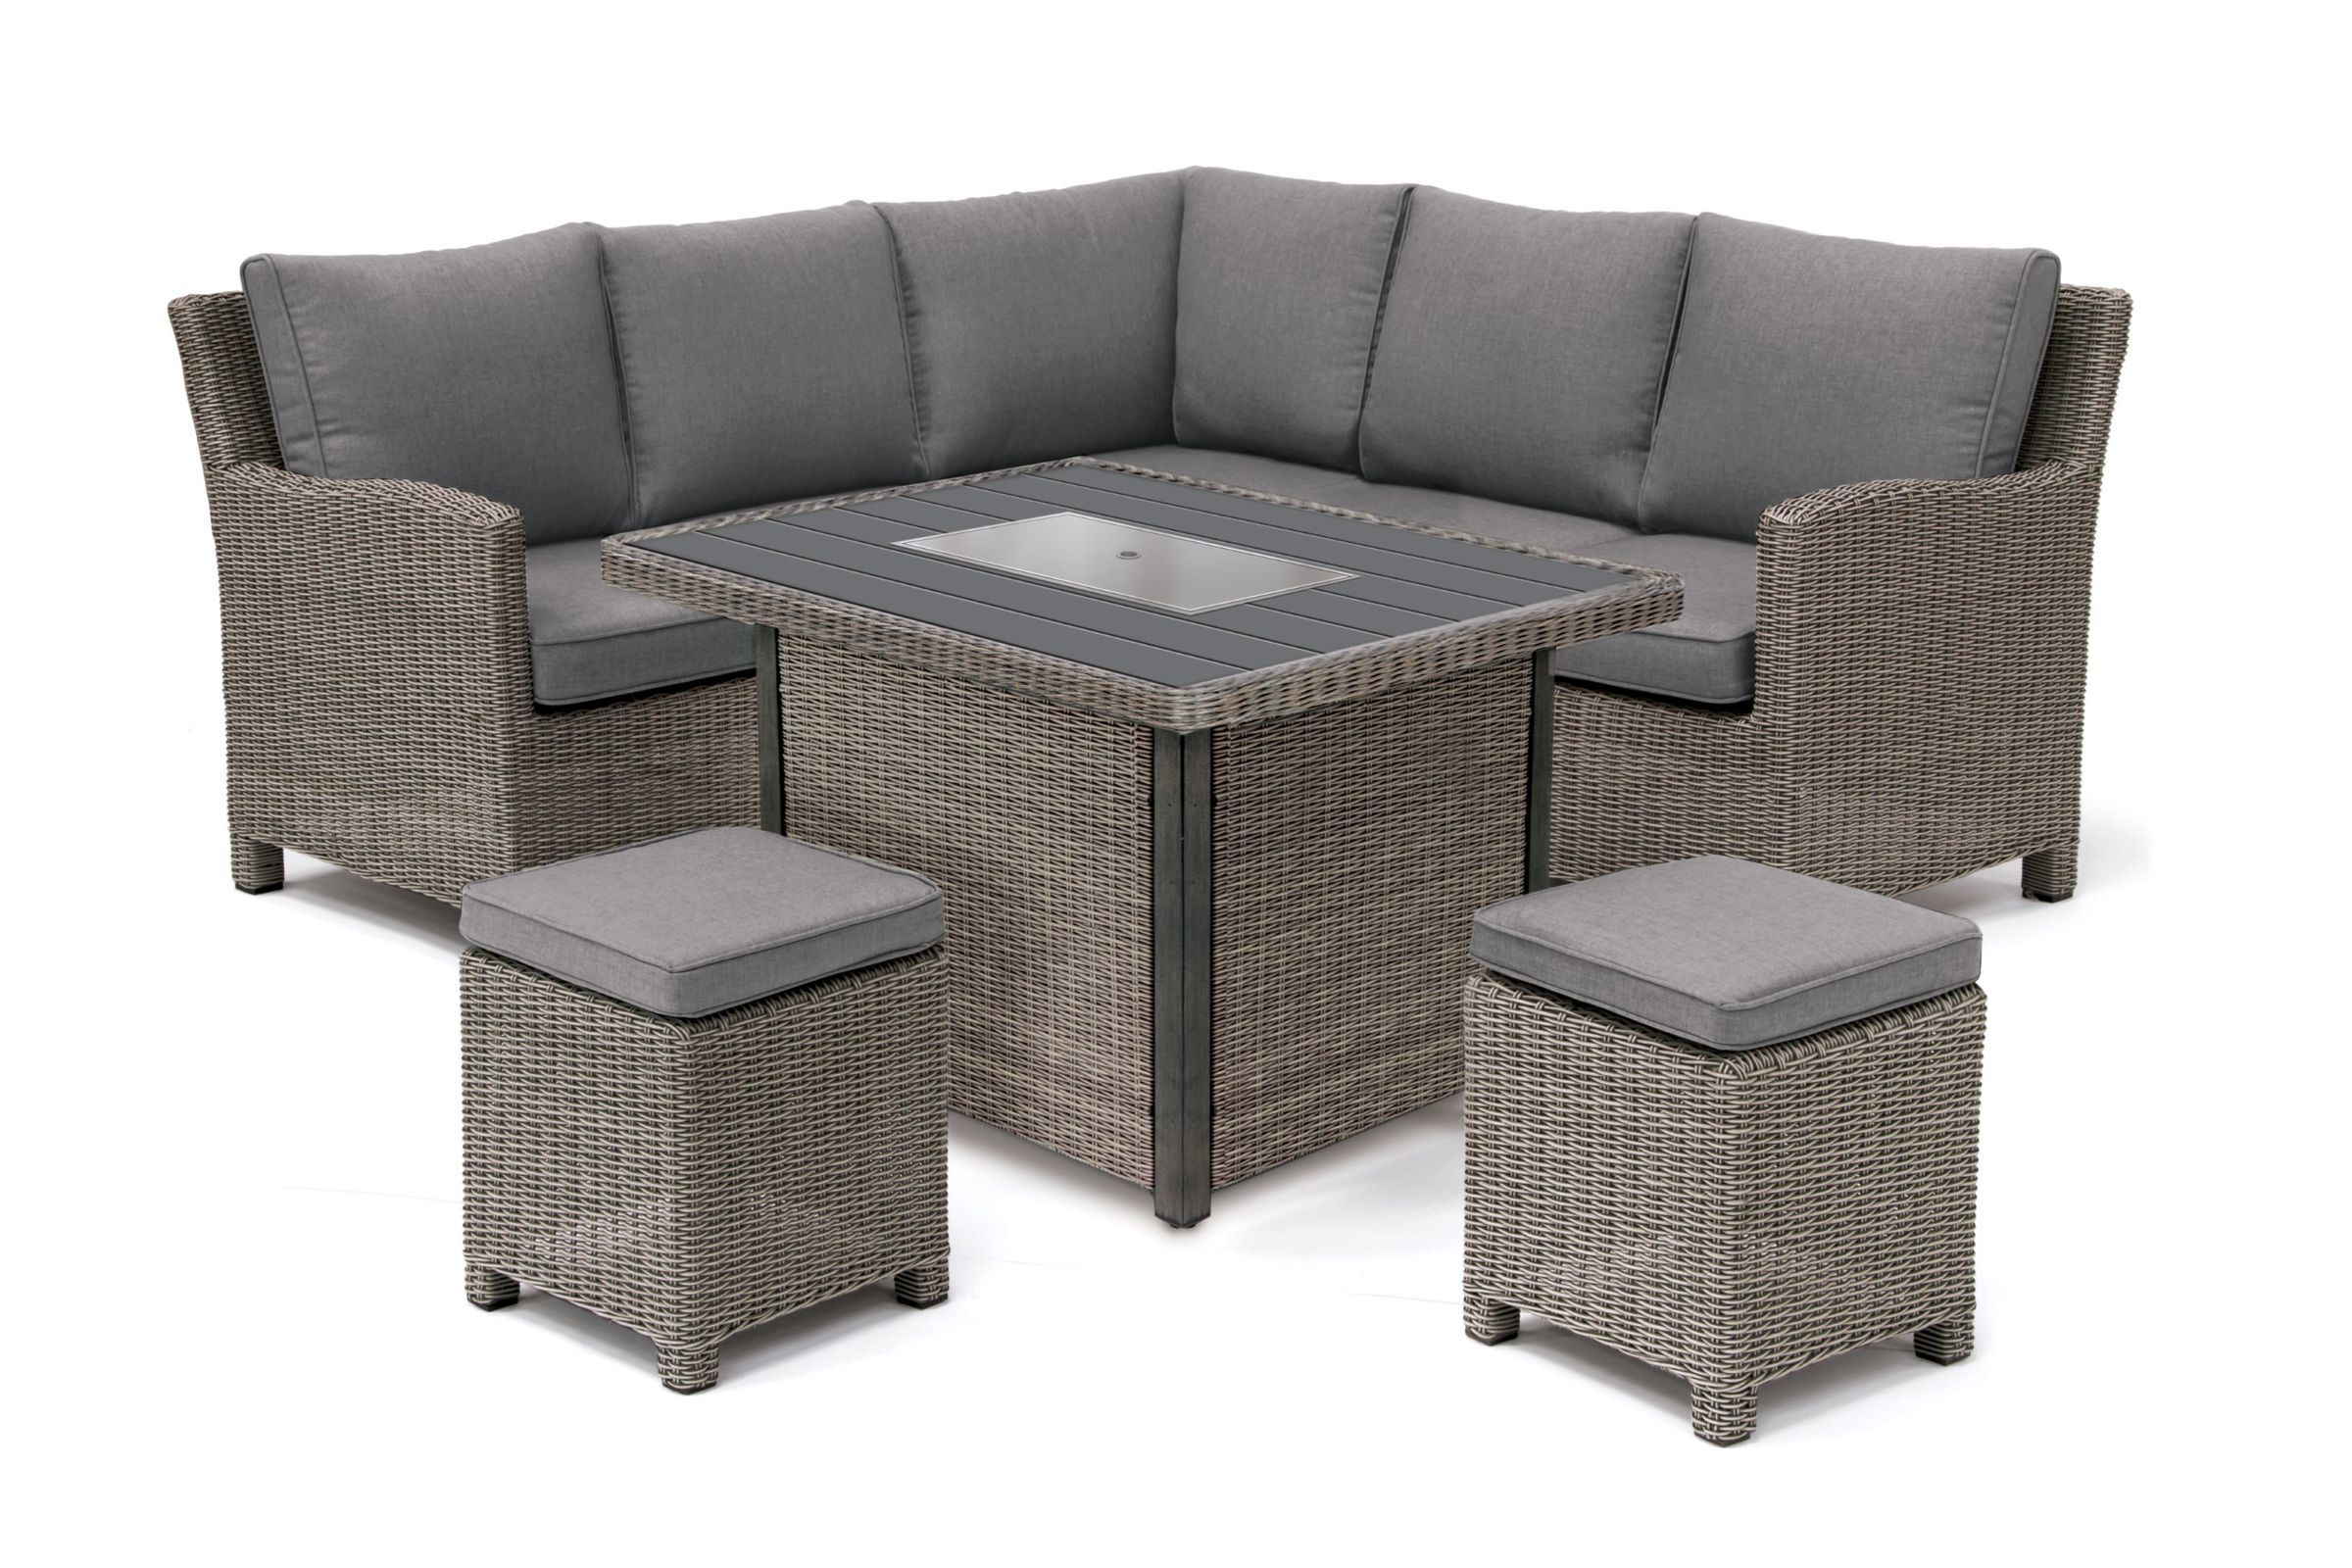 Kettler Palma Mini Set with Firepit Table